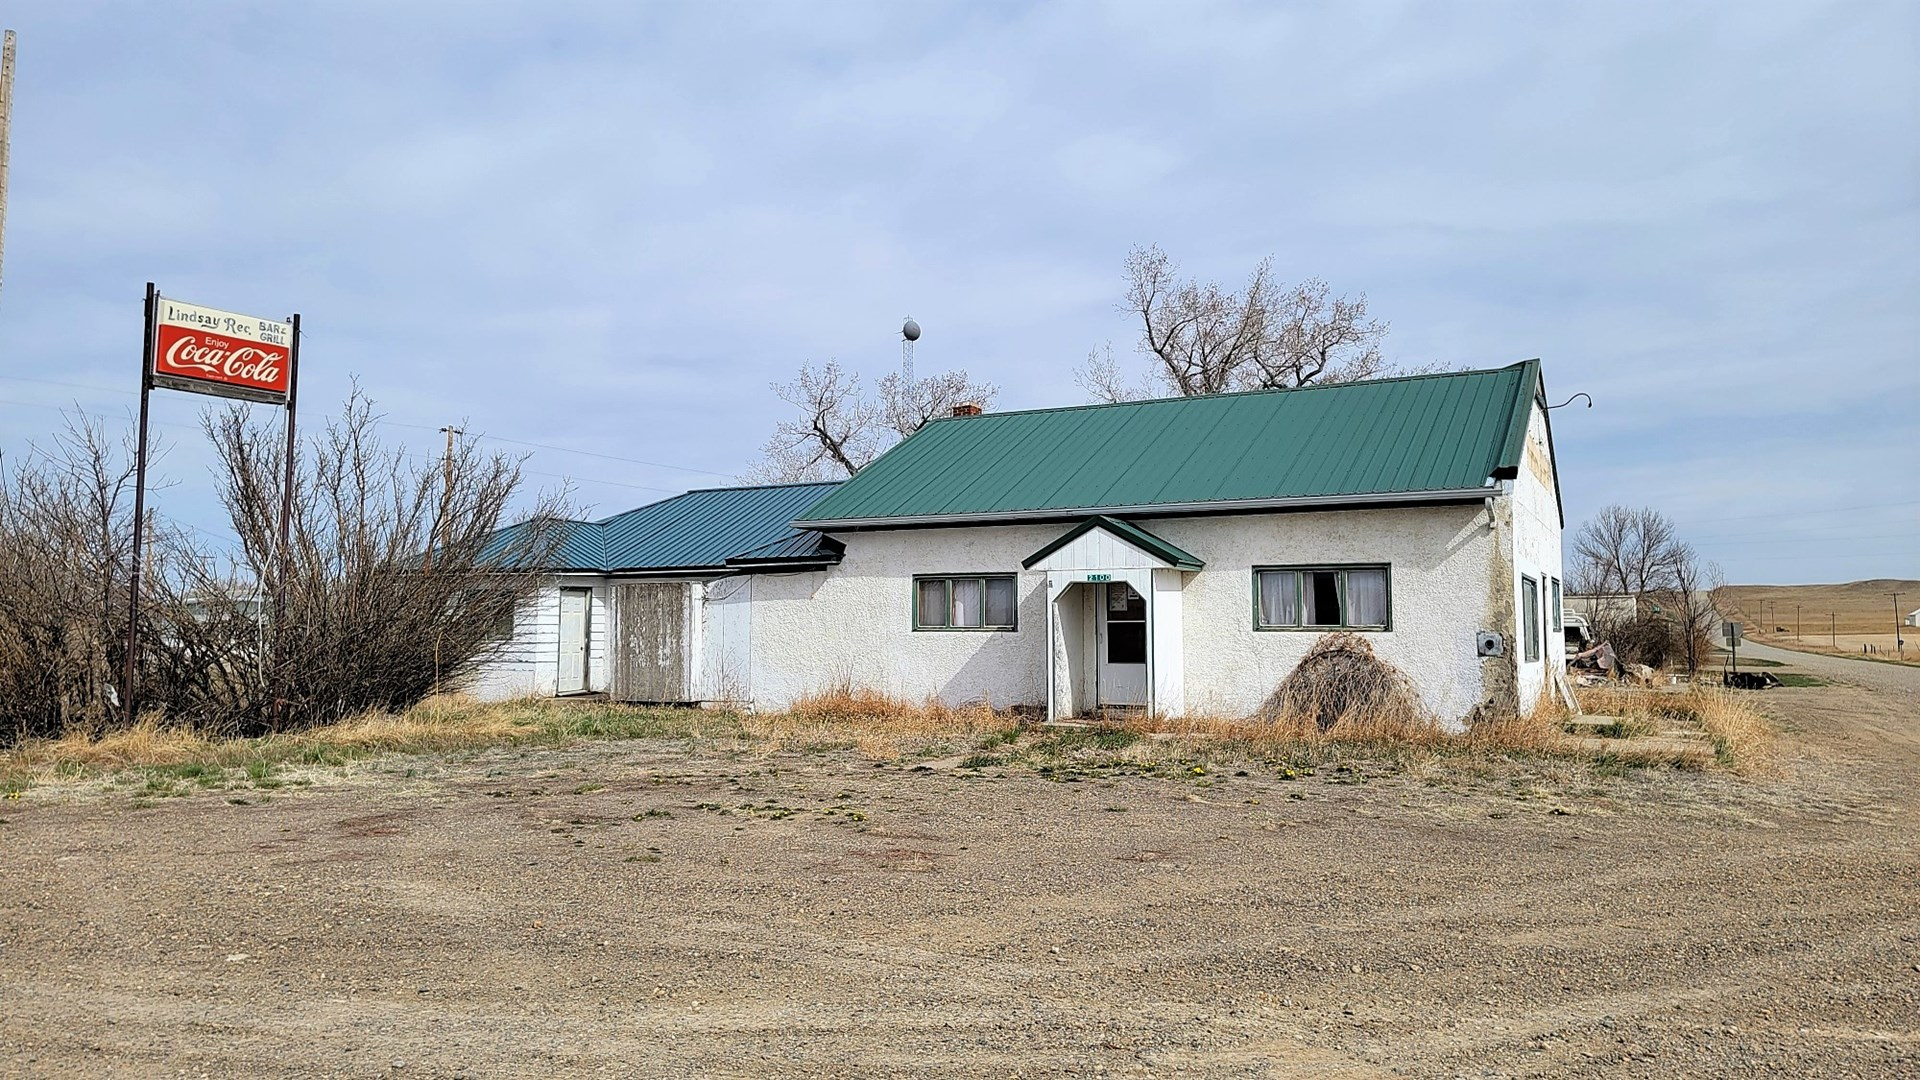 Home with a bar or bar with a home for sale Lindsay, MT